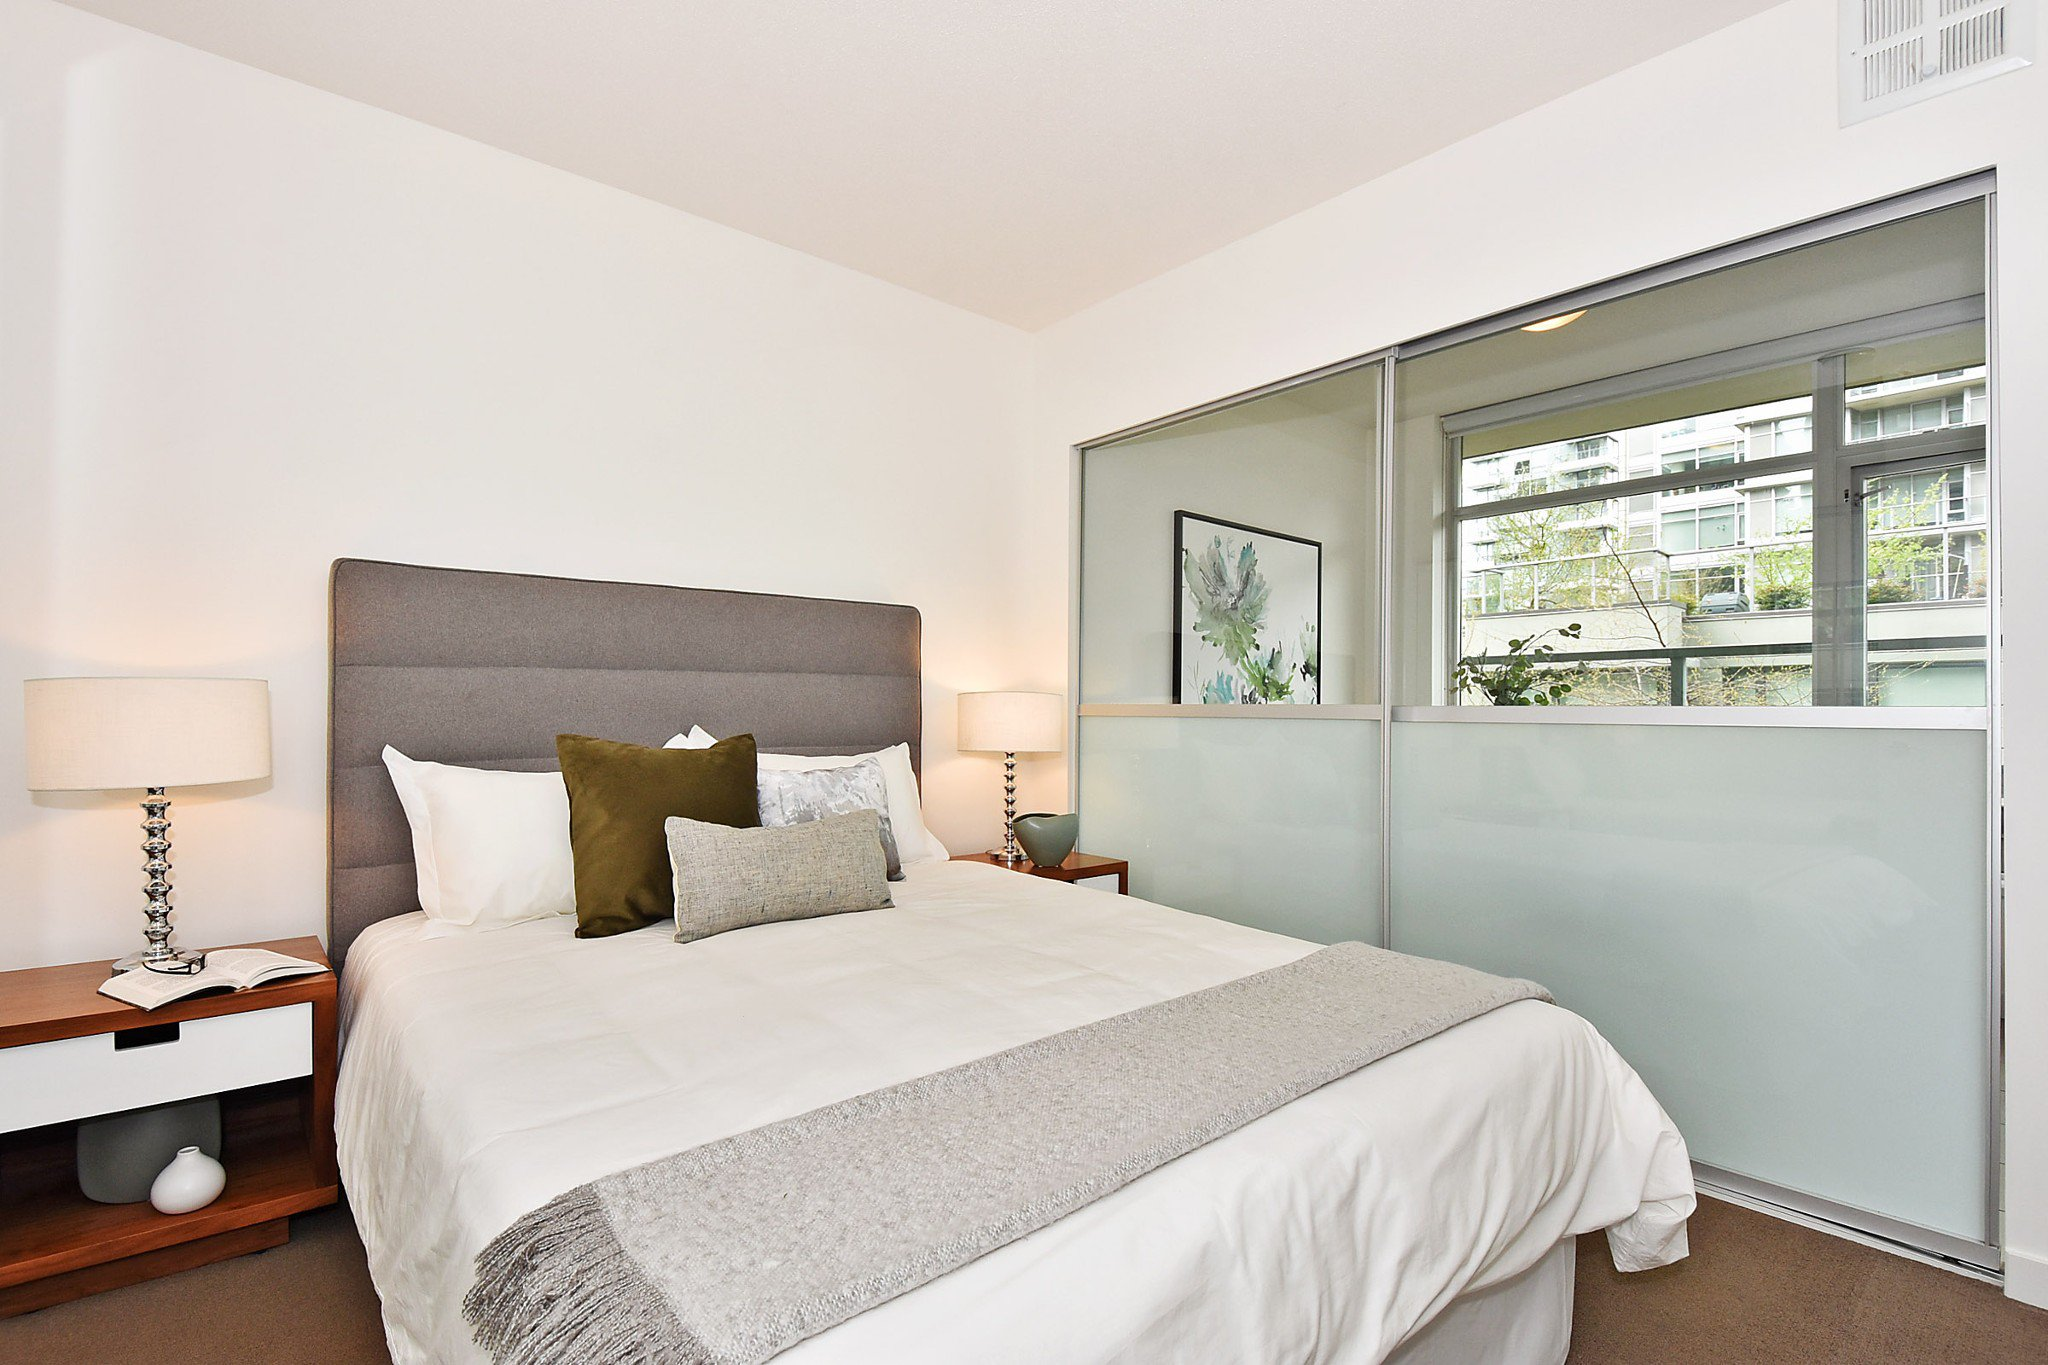 Photo 12: Photos: 306 138 W 1ST AVENUE in Vancouver: False Creek Condo for sale (Vancouver West)  : MLS®# R2360592